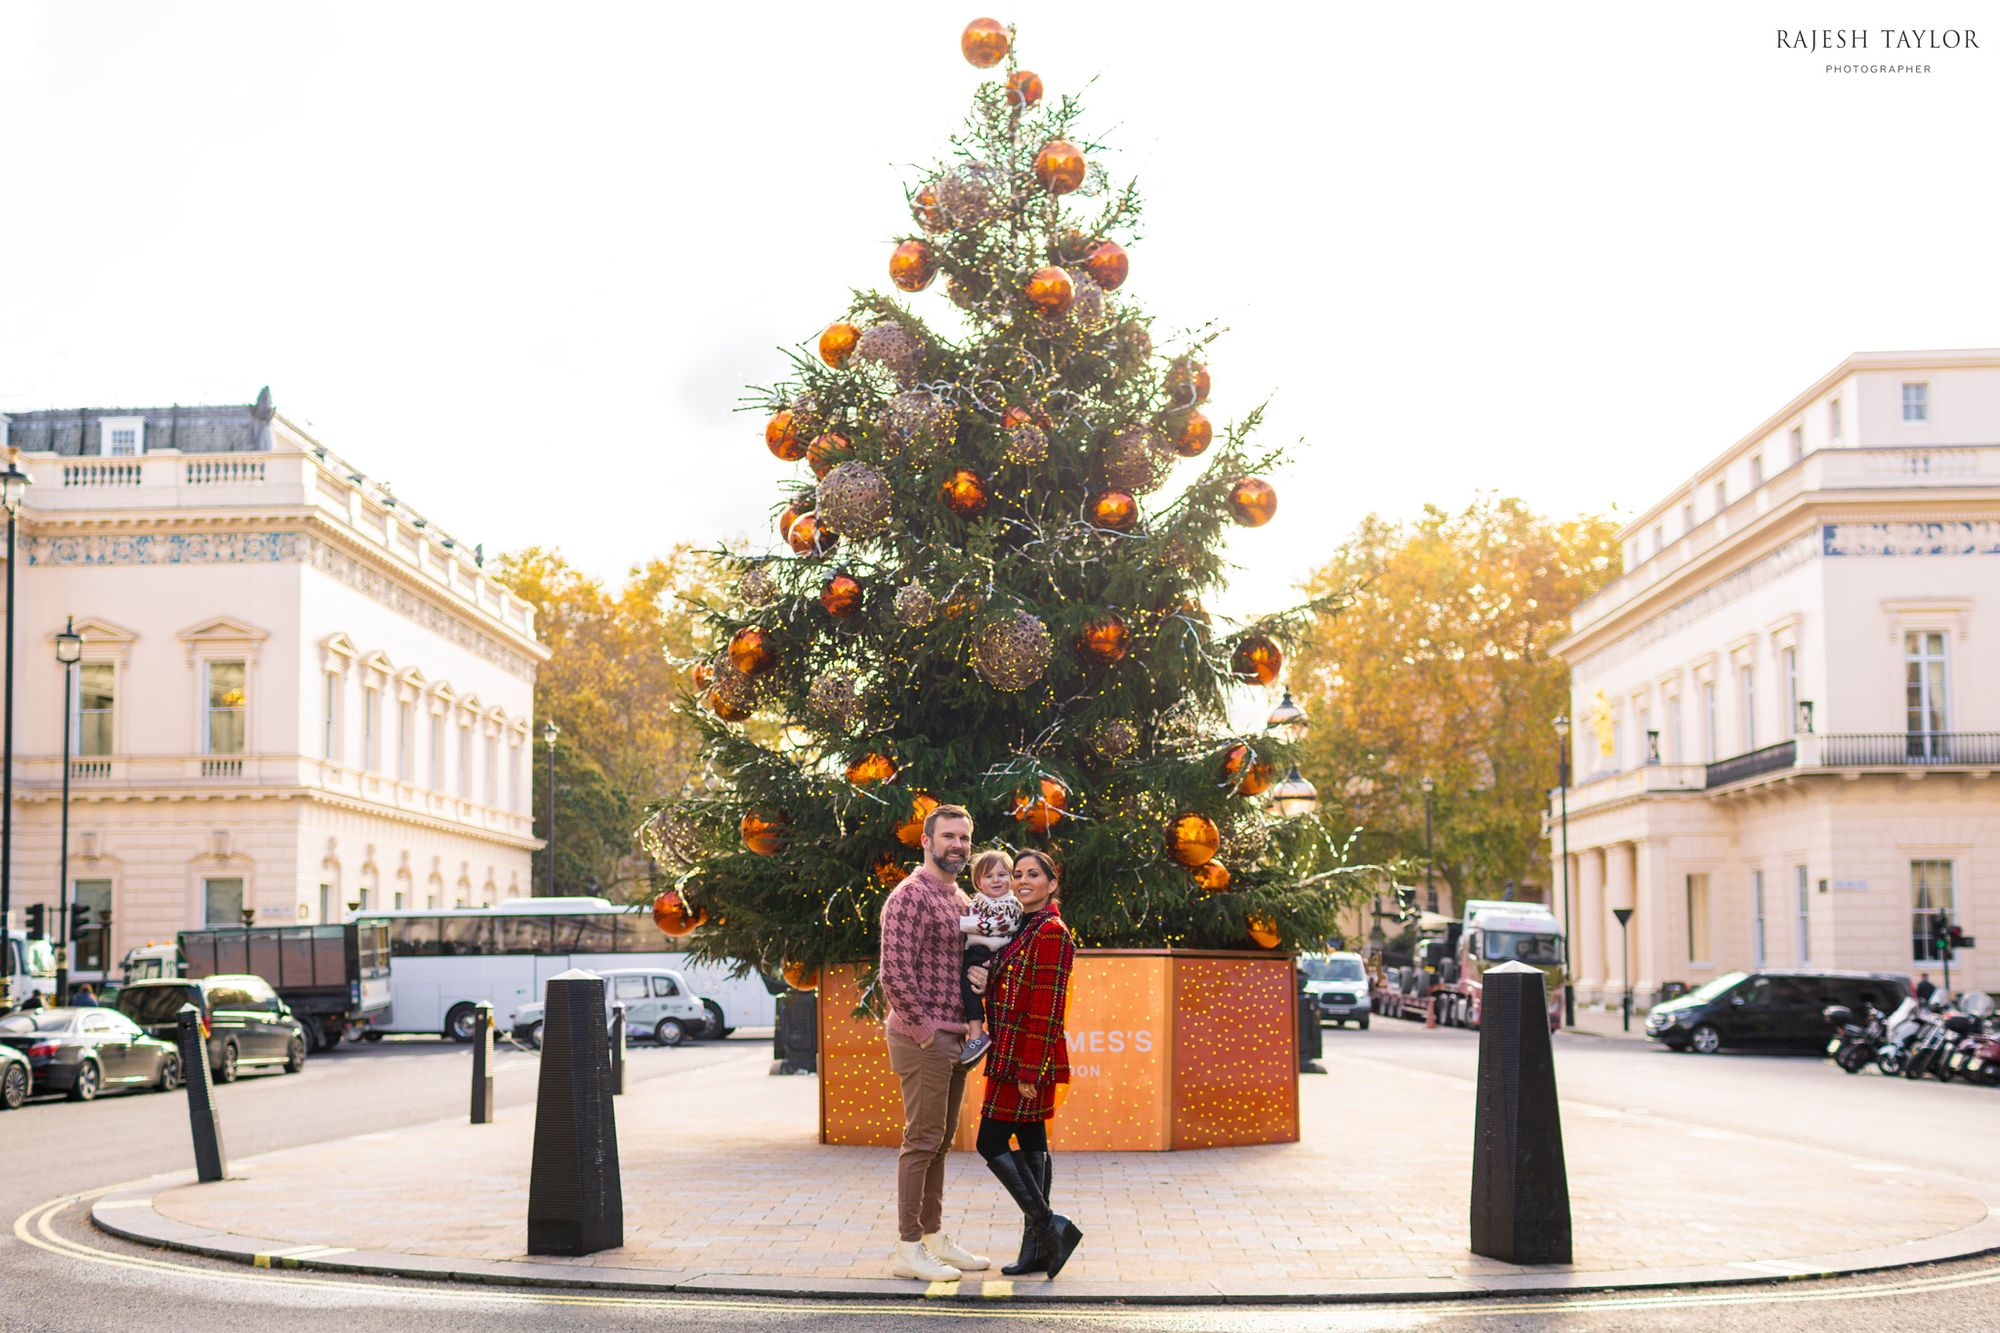 The St James's Christmas Tree on Waterloo Place with The Snelling Family (L) Institute of Directors (formerly the United Service Cub) and (R) The Athenaeum in the distance: © Rajesh Taylor